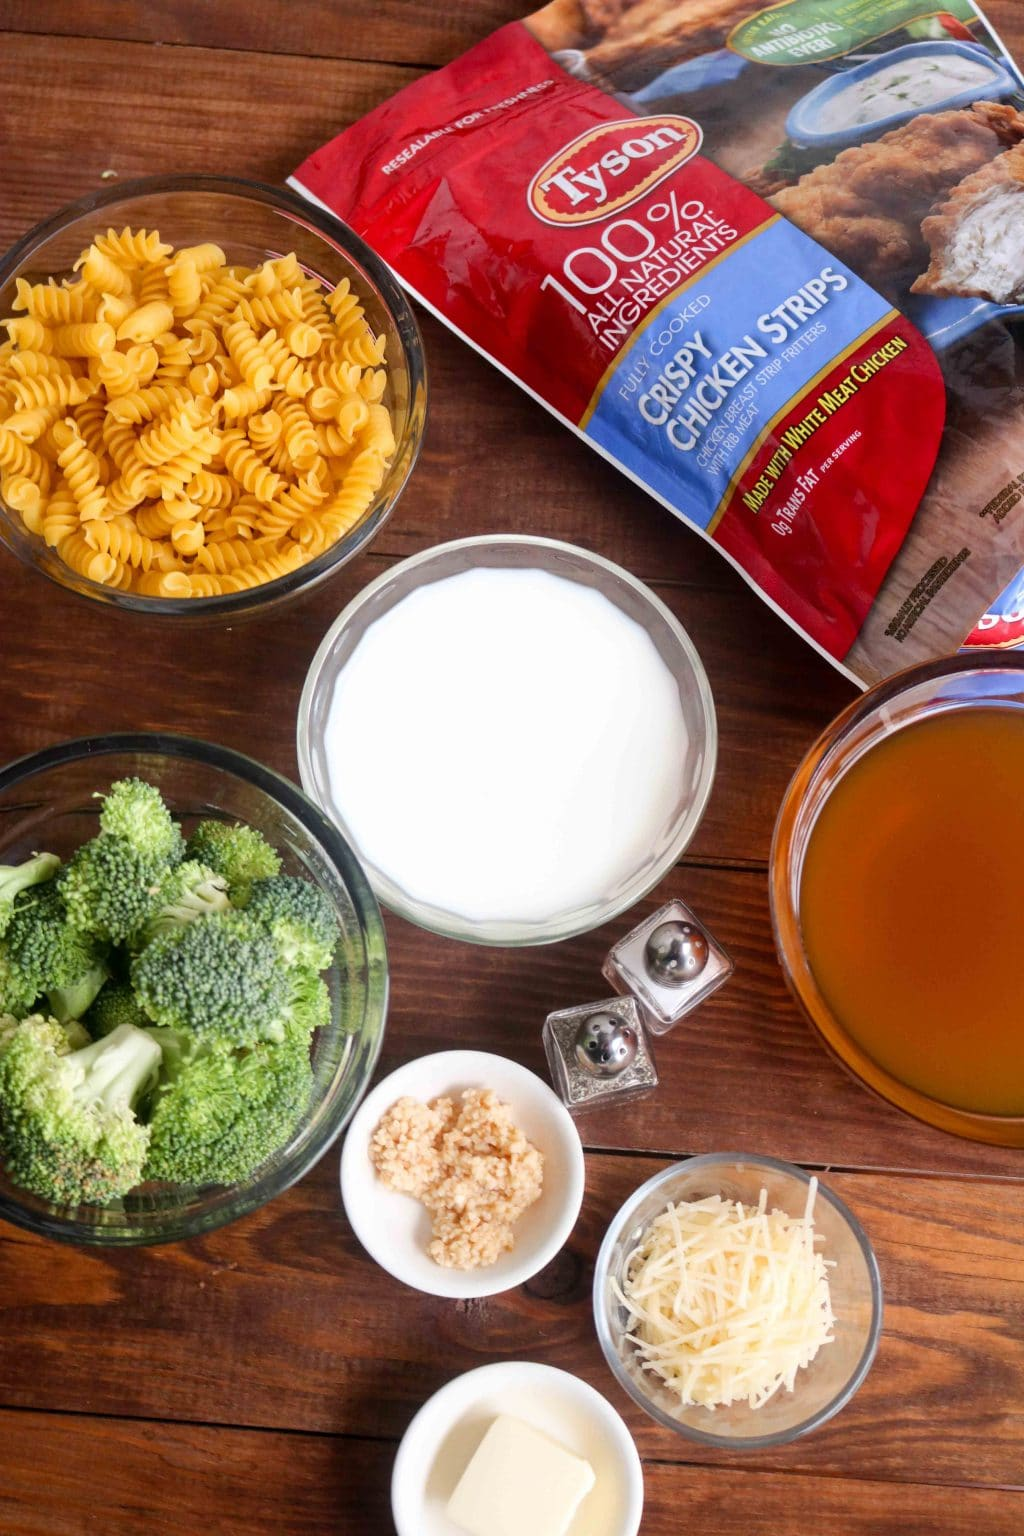 Individual ingredients for Broccoli Chicken Alfredo Pasta in bowls along with Tyson crispy chicken strips package on a wooden table.